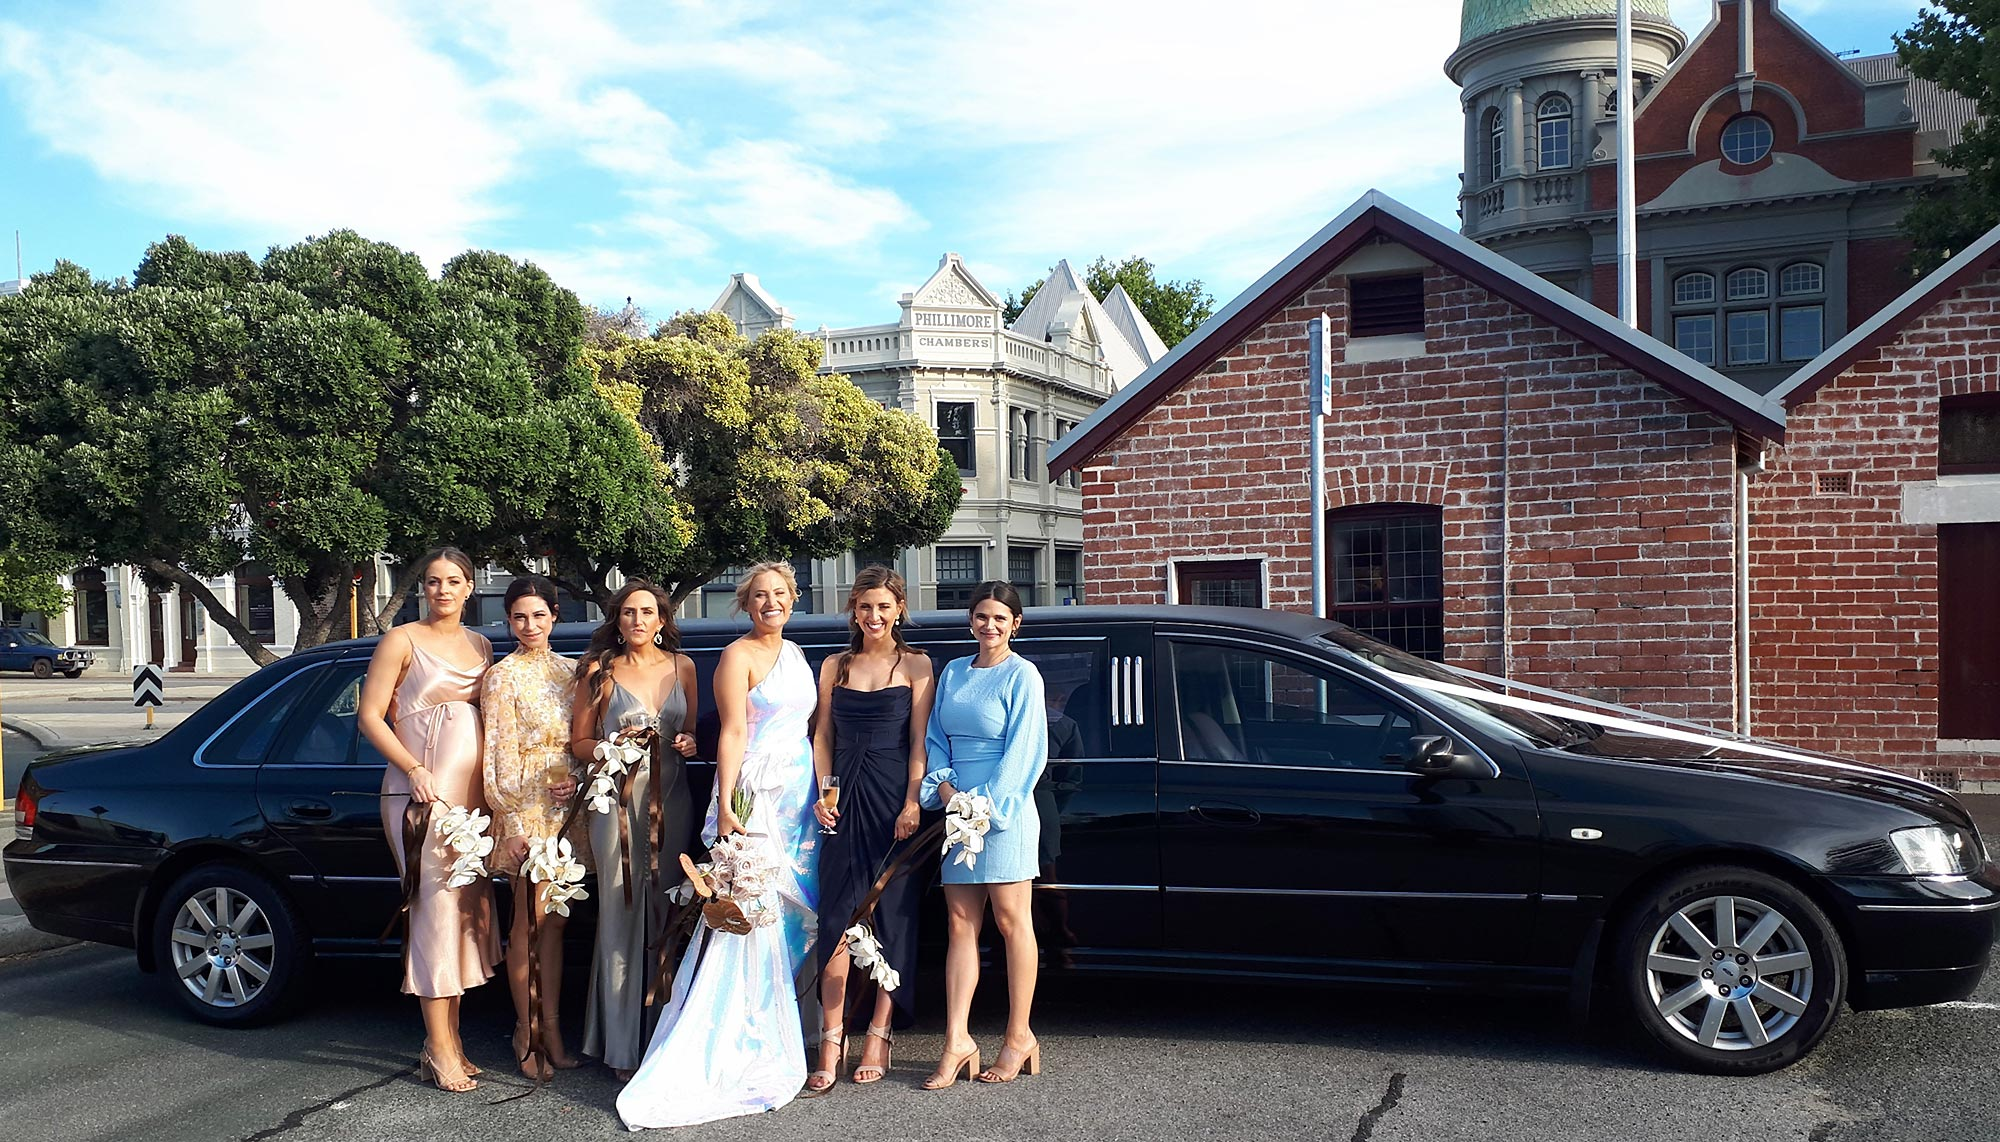 Perth limo hire. Affordable luxury. Tailored packages. 0409 013 413.